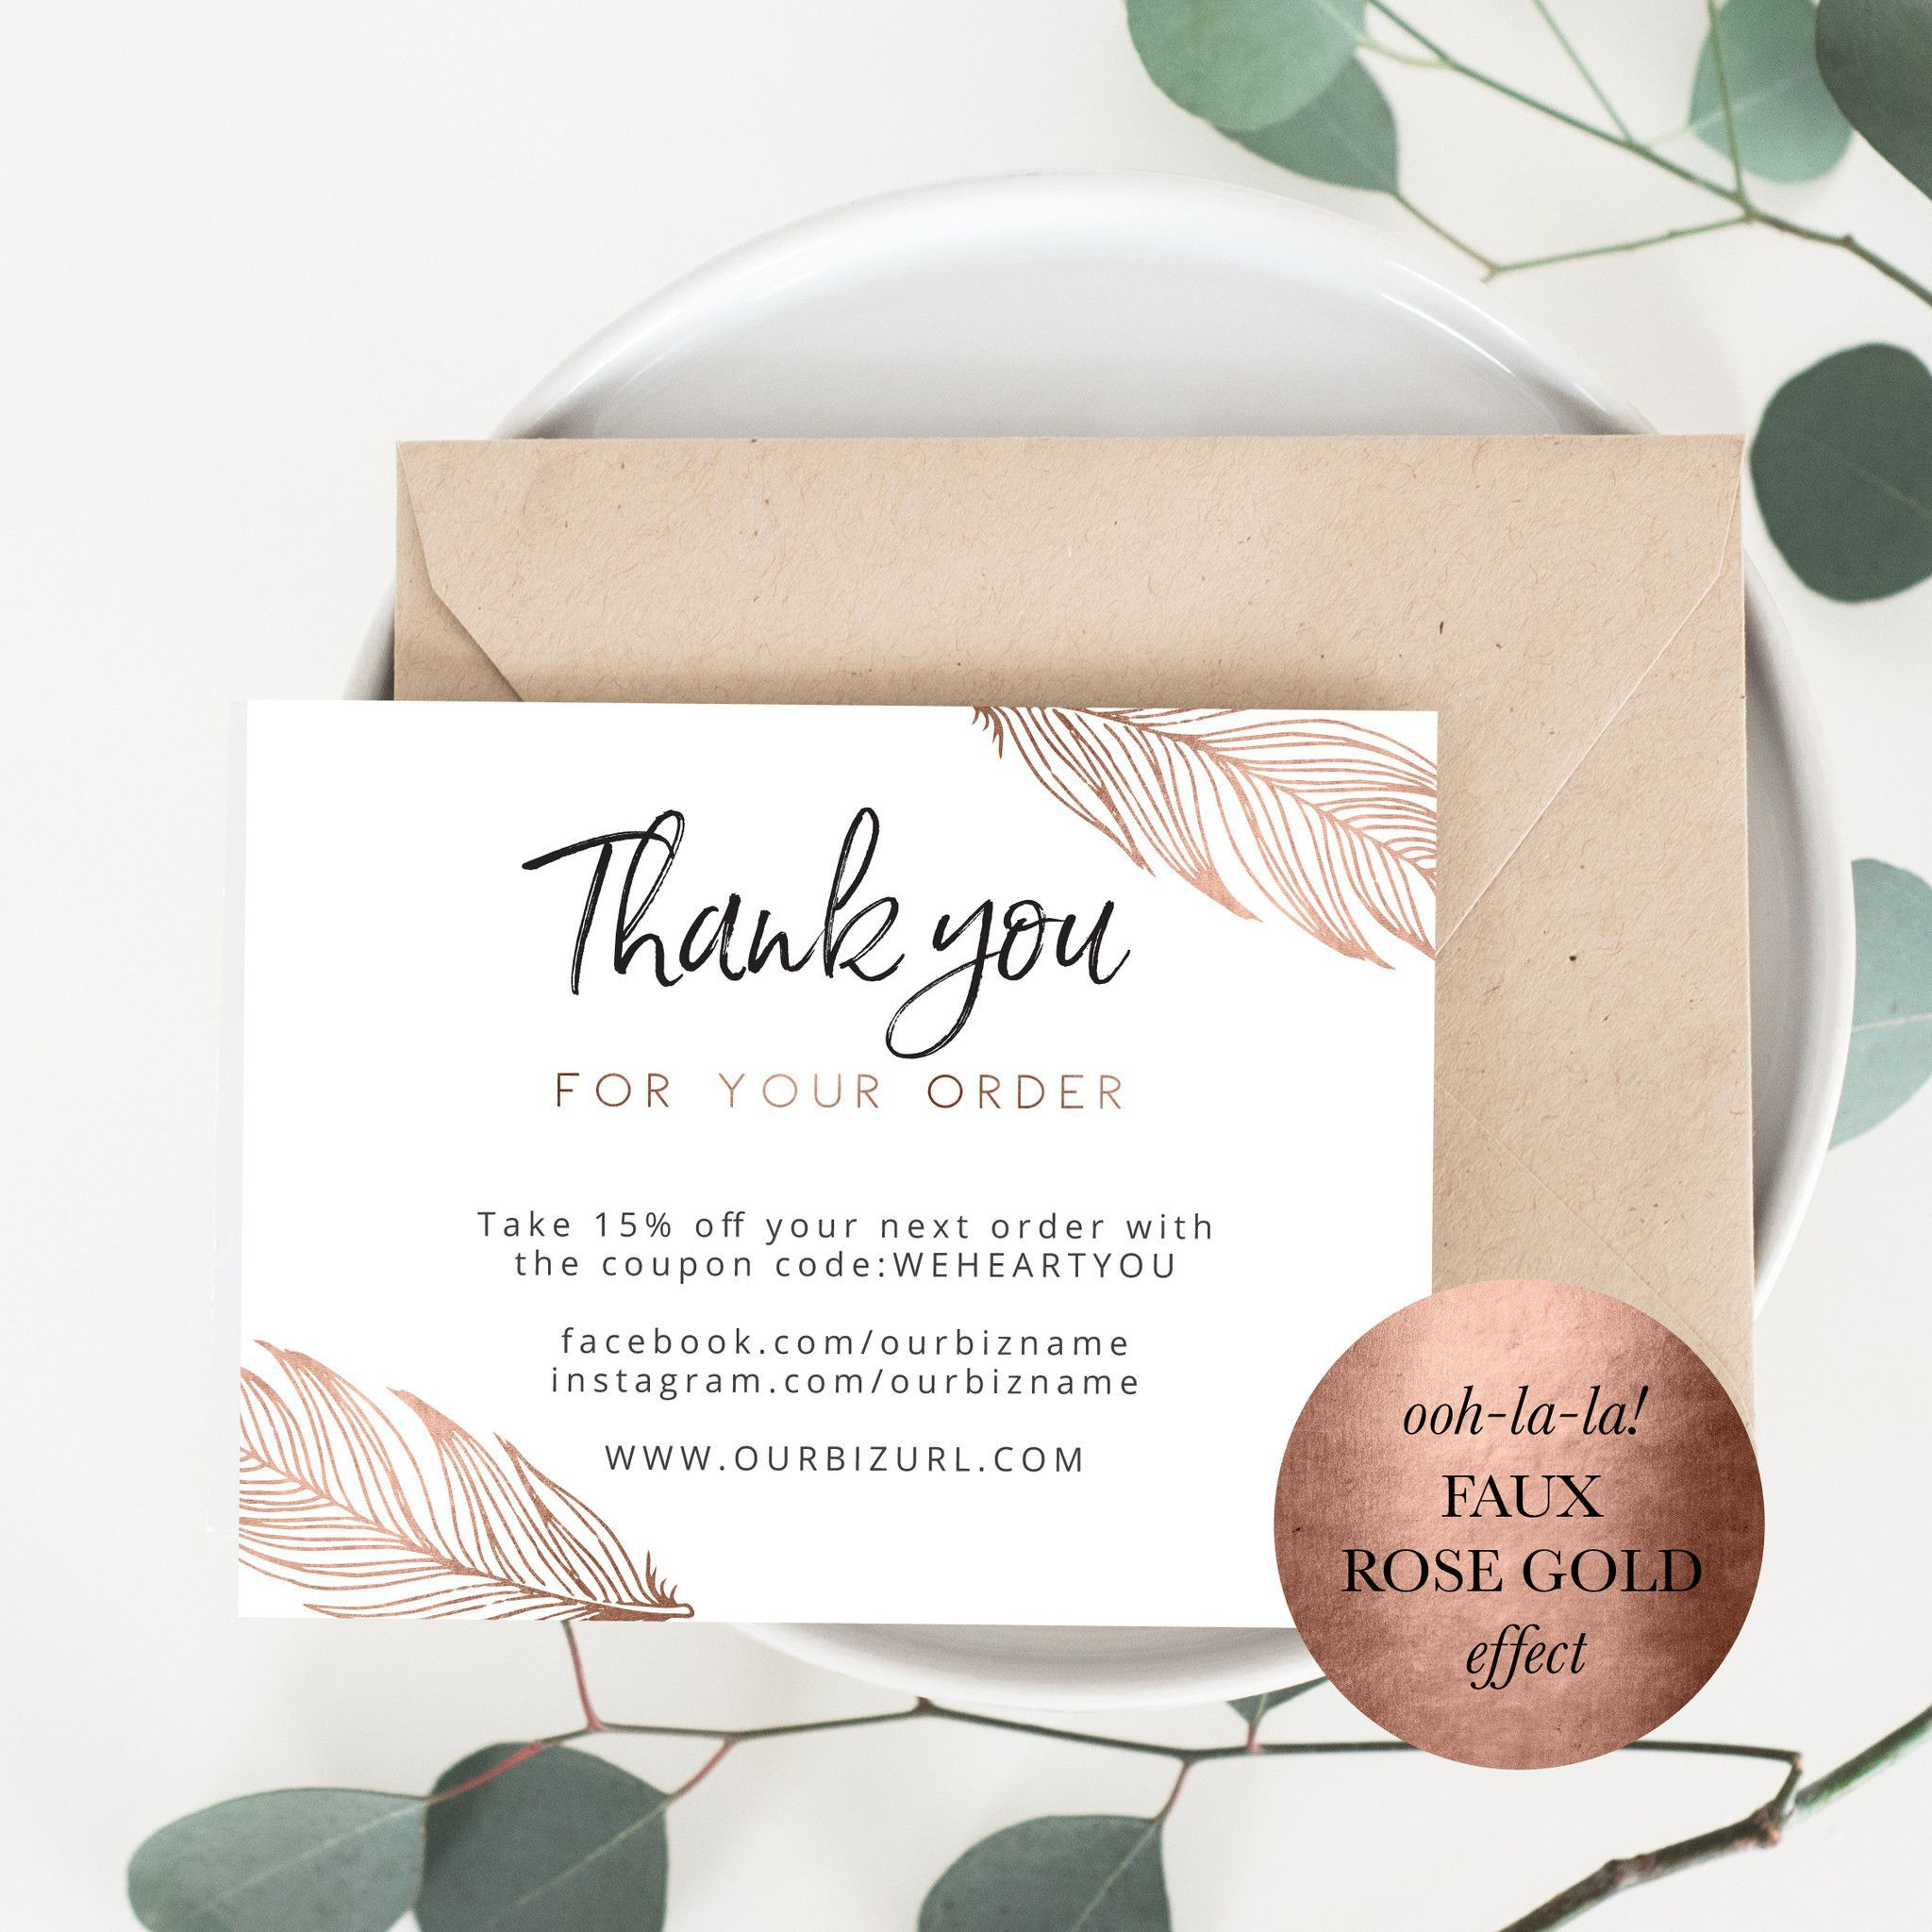 000 Phenomenal Thank You Note Template Pdf High Def  Card Free Sample Letter For Donation Of GoodFull